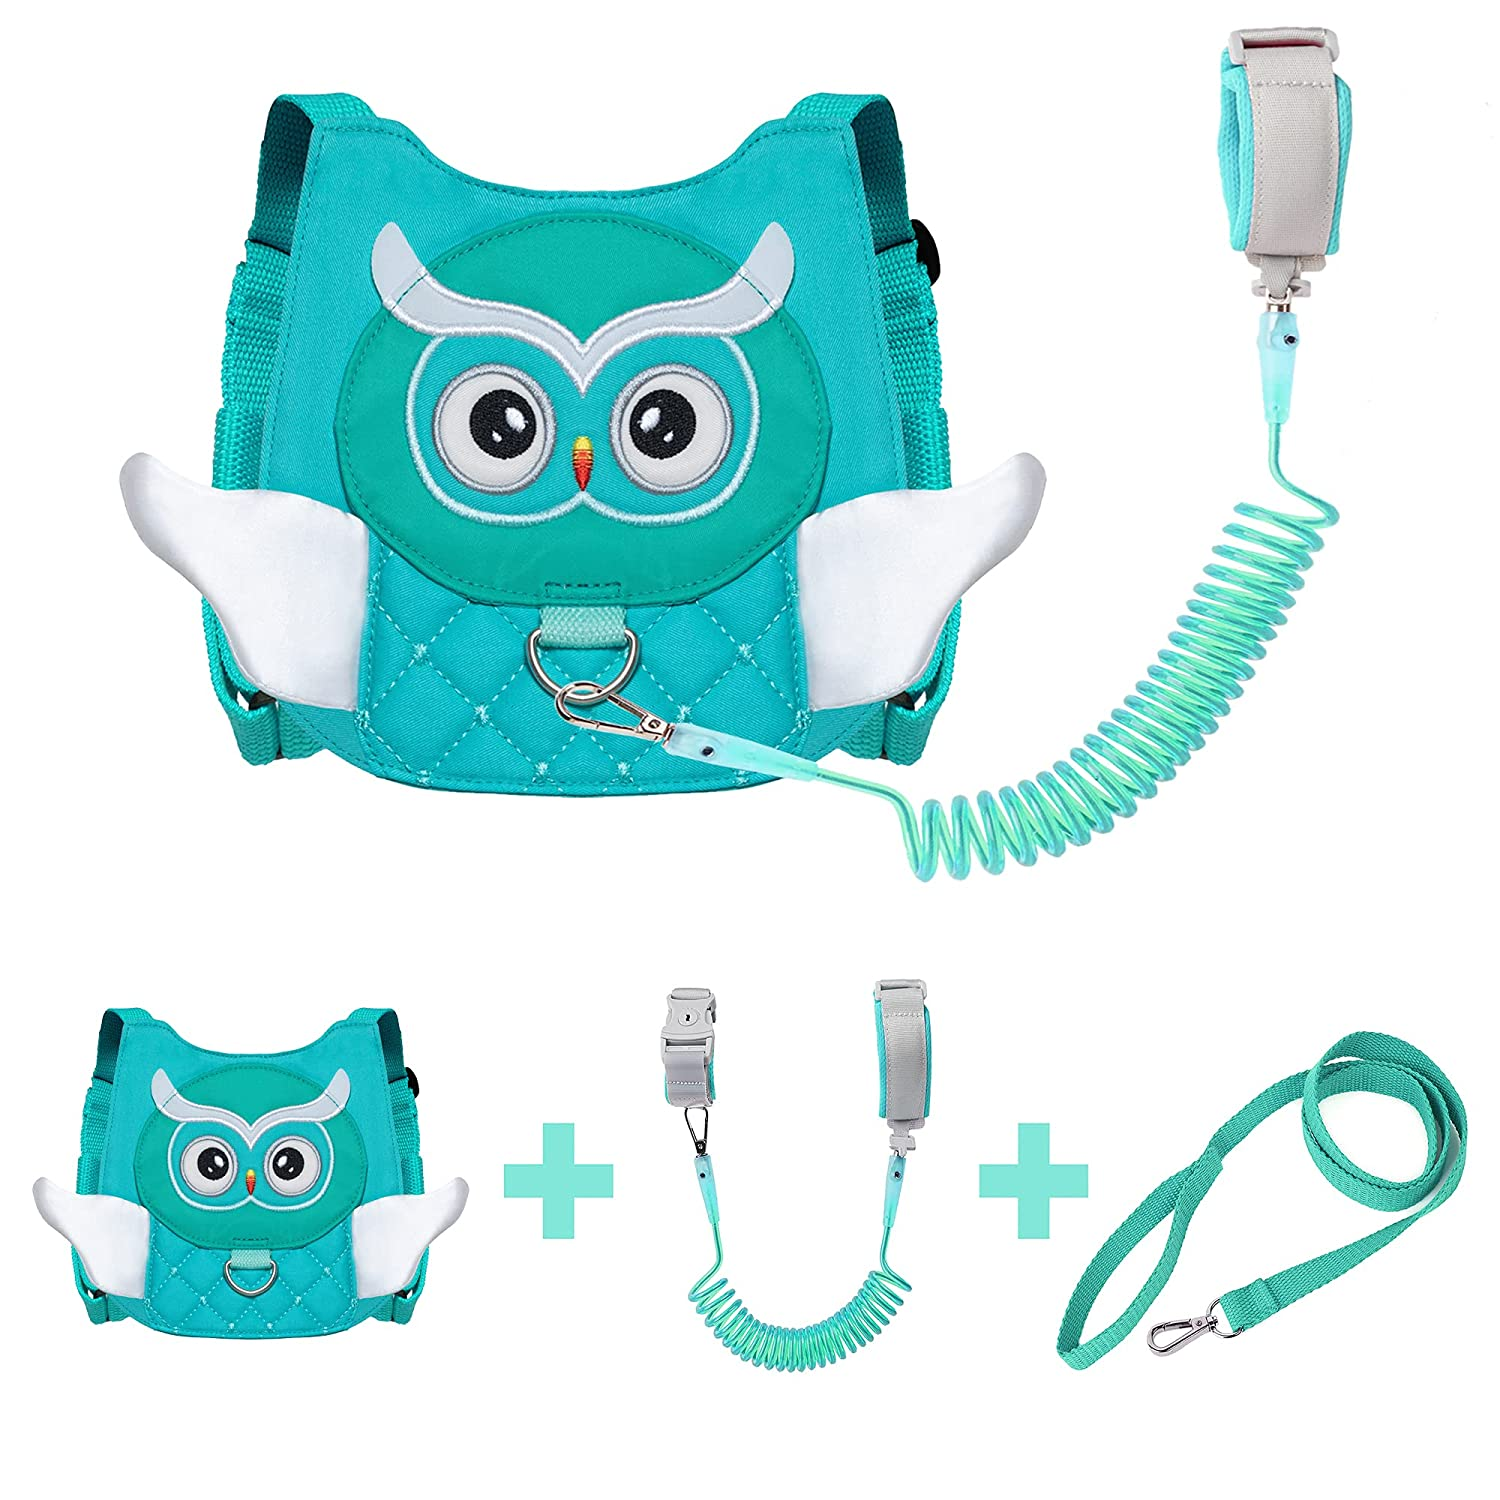 EPLAZA Owl-Like Toddler Harnesses with Leashes Anti Lost Wrist Link Wristband for 1.5 to 3 Years Kids Girls Boys Safety (Owl Green)